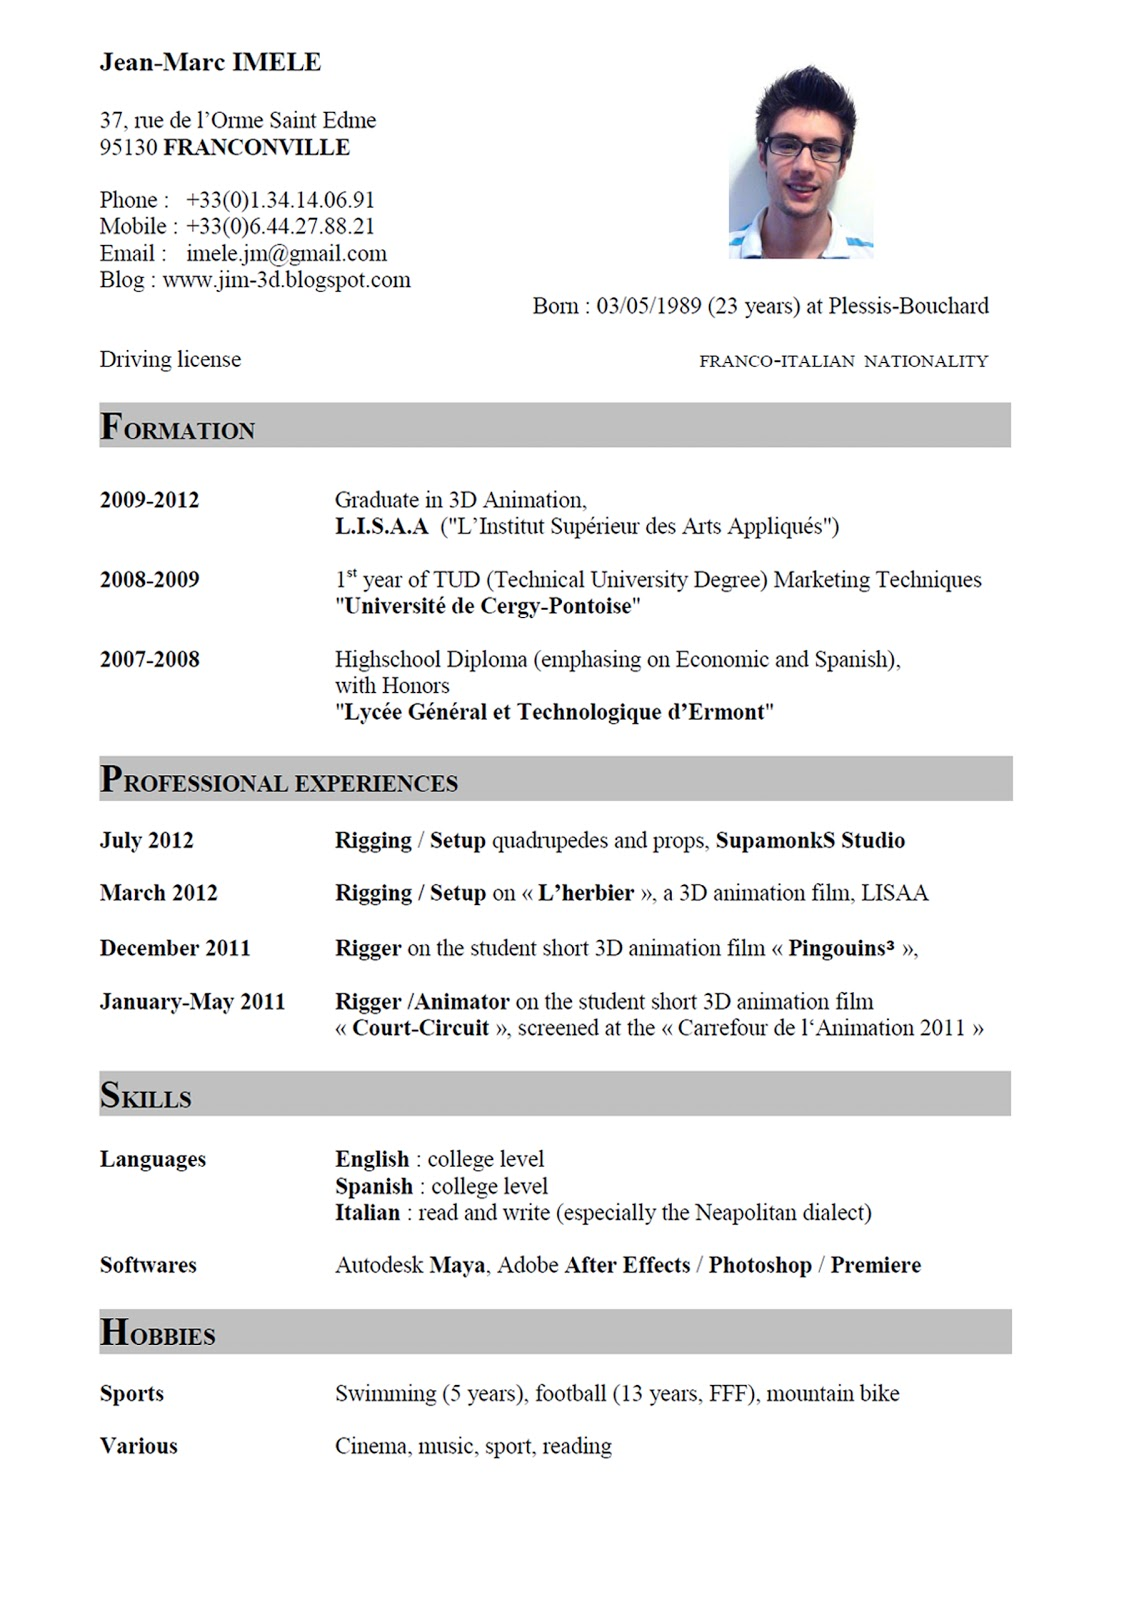 curriculum vitae format for teachers professional resume cover curriculum vitae format for teachers curriculum vitae o cv curriculum vitae how to write a cv